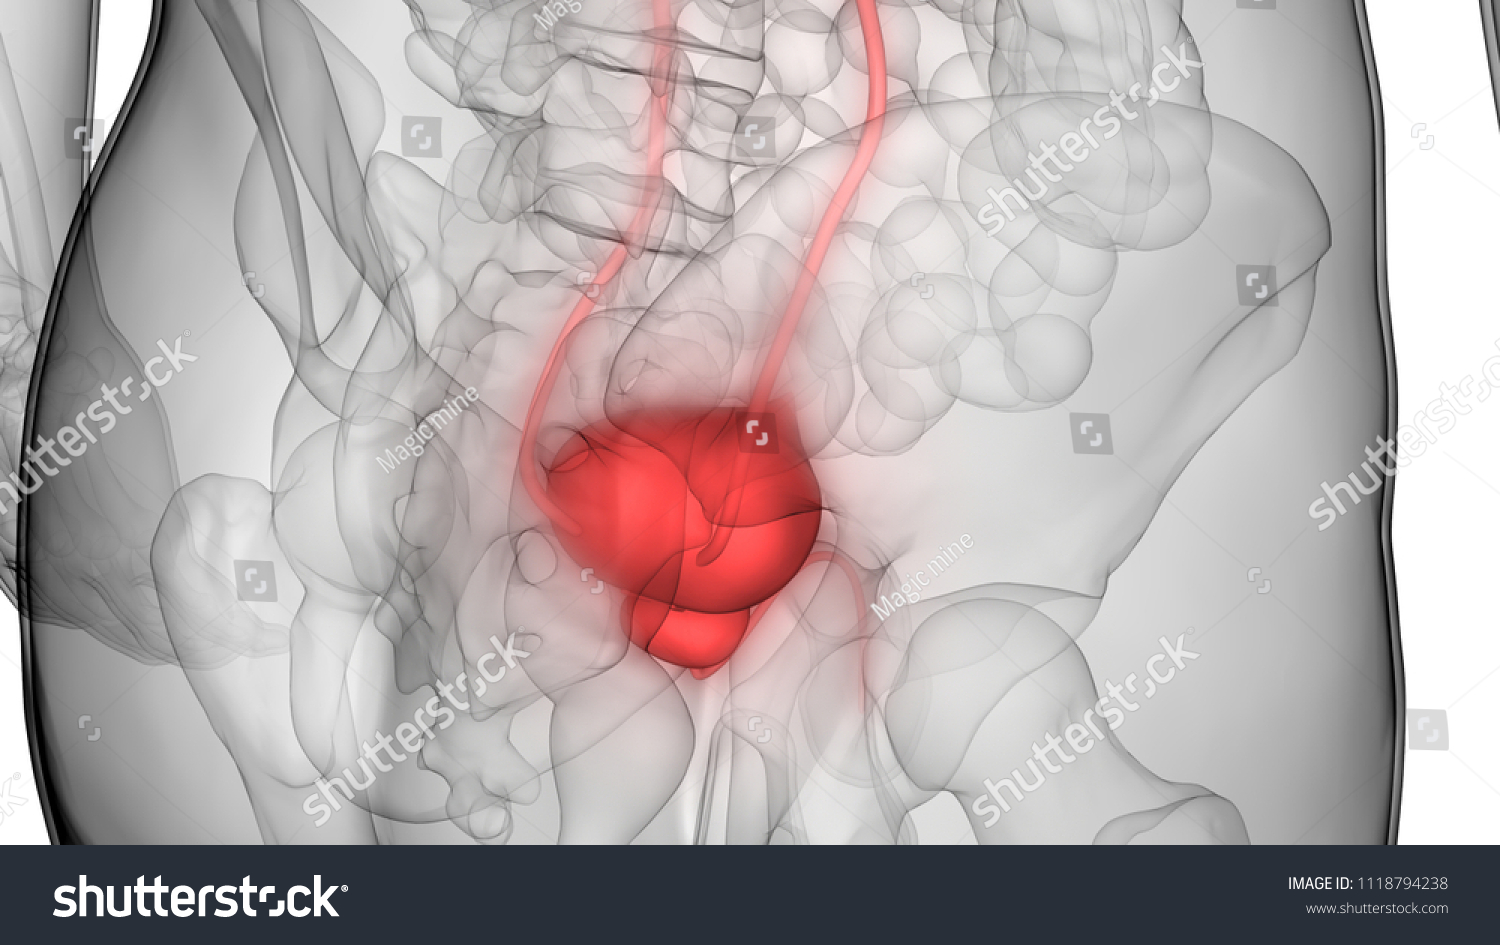 Male Urinary System Kidneys Bladder Anatomy Stock Illustration ...